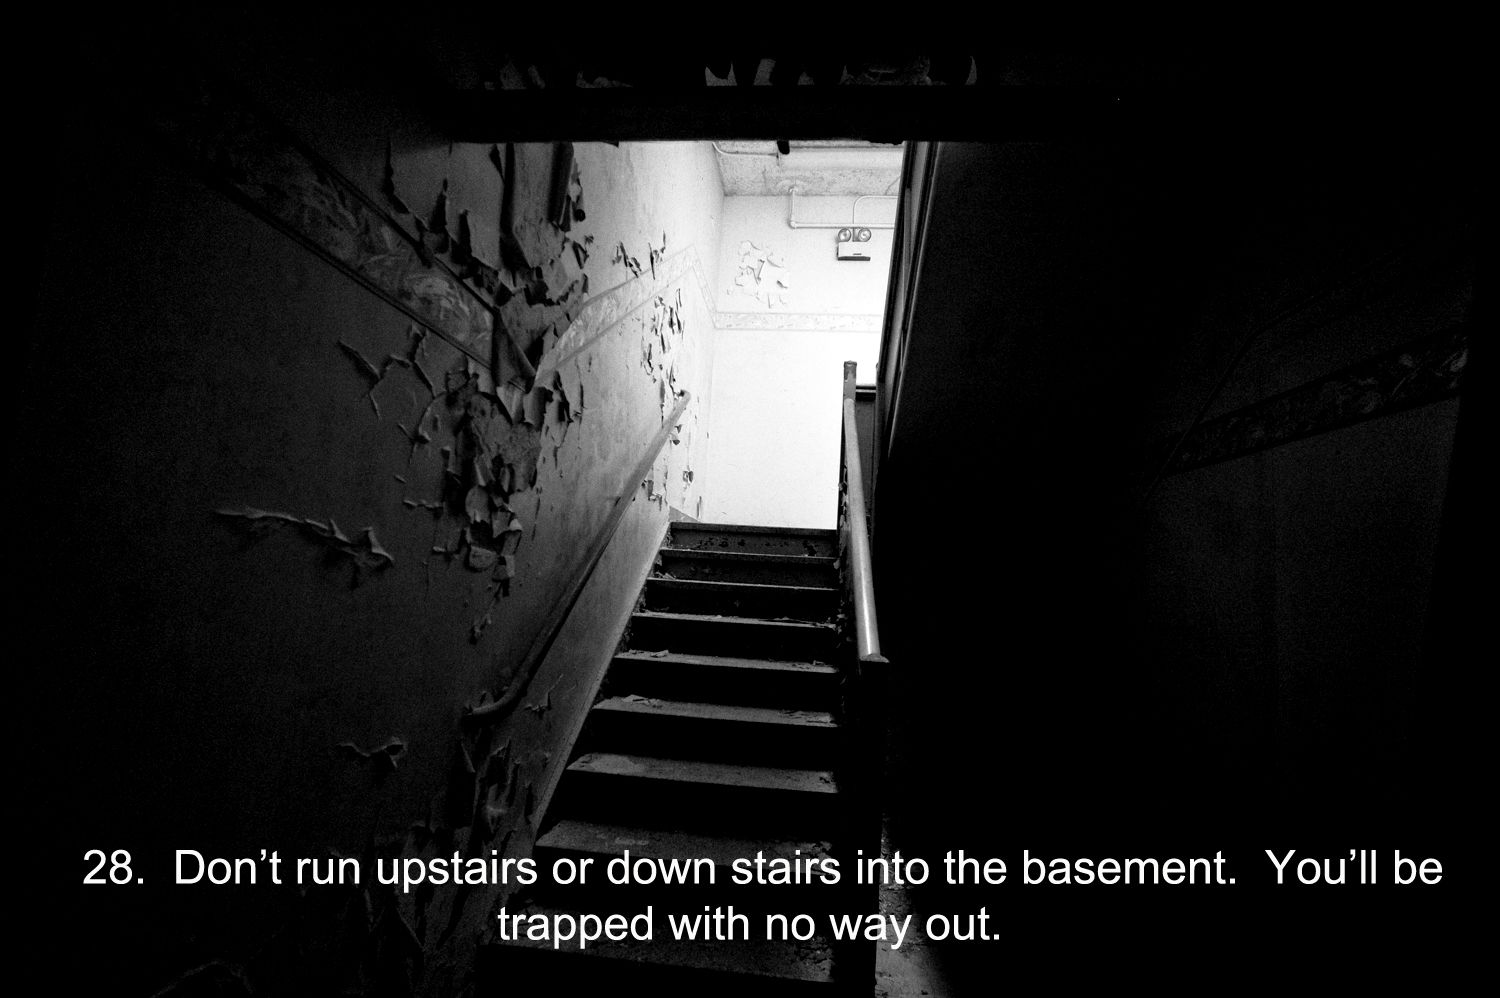 Safe and Happy Halloween rule 28. Don't run upstairs or